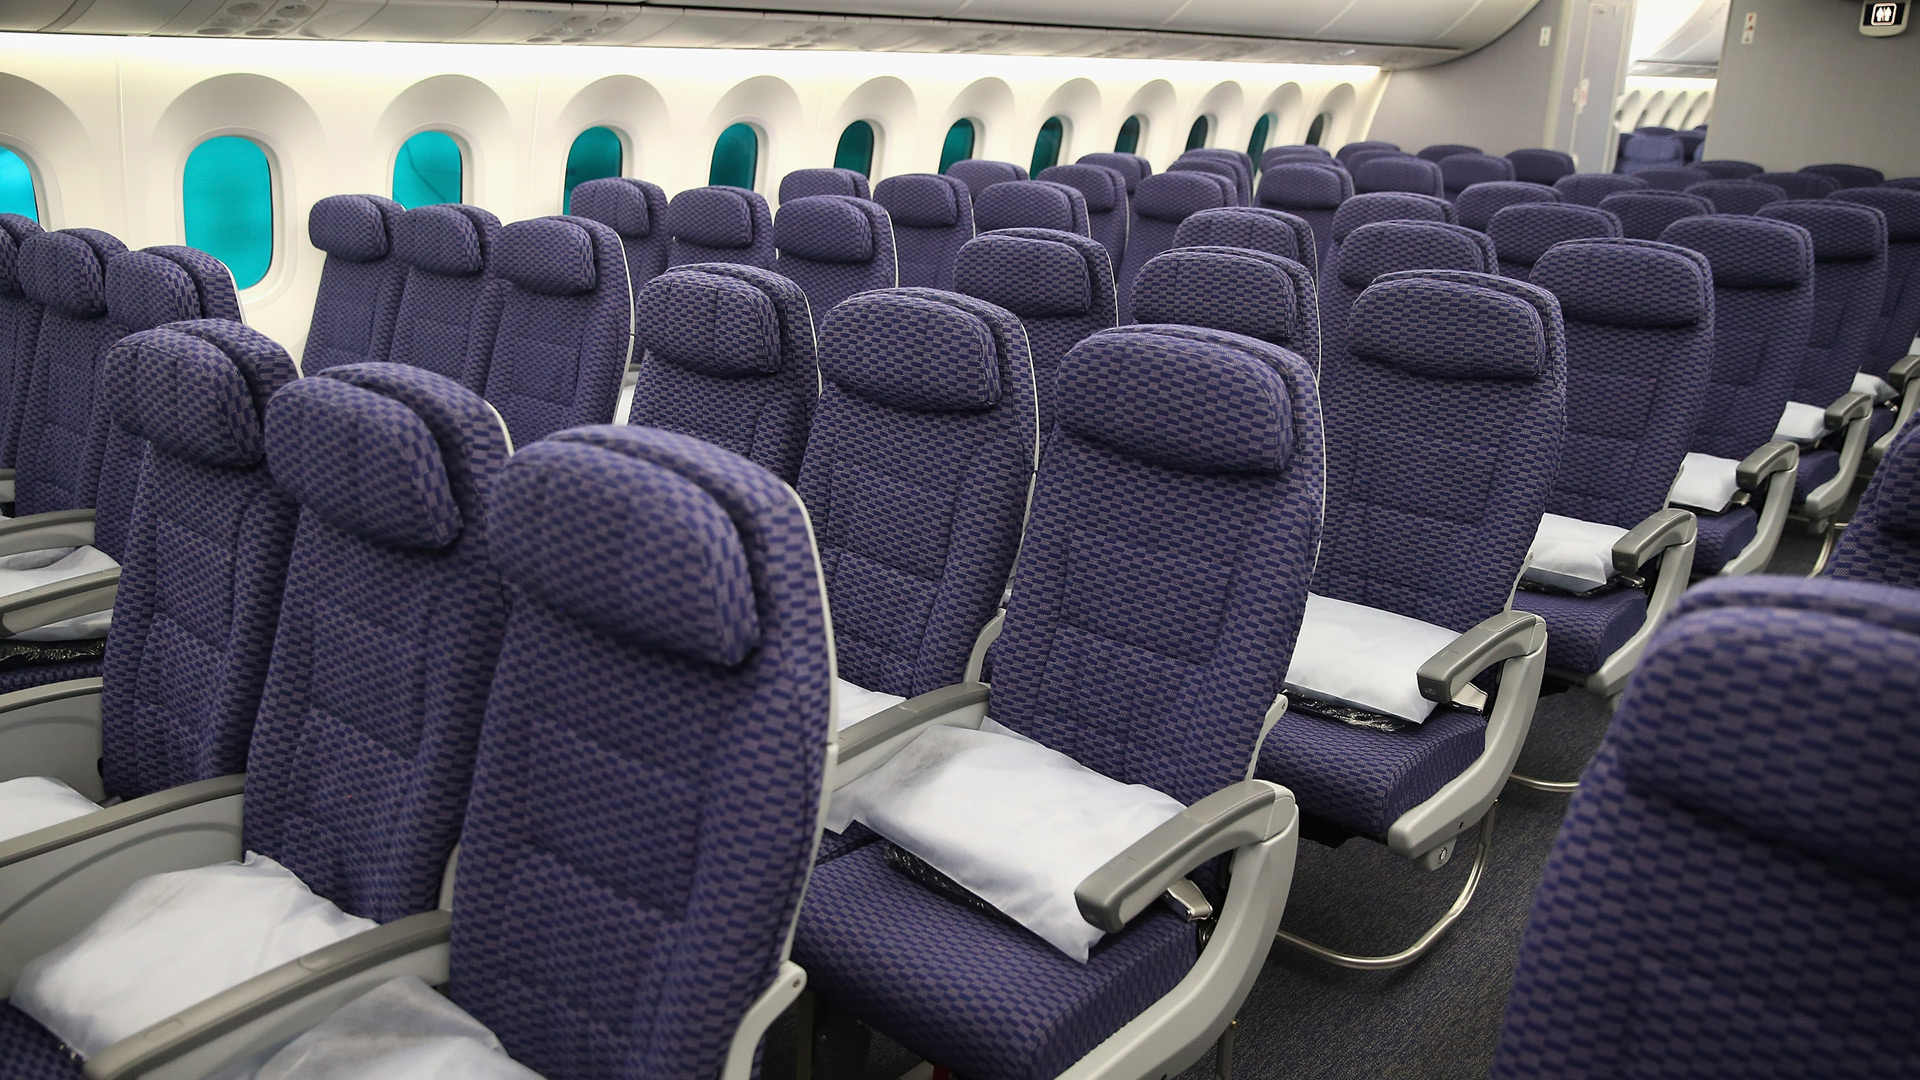 The cabin of an airplane is shown in an undated photo. (Scott Olson/Getty Images)